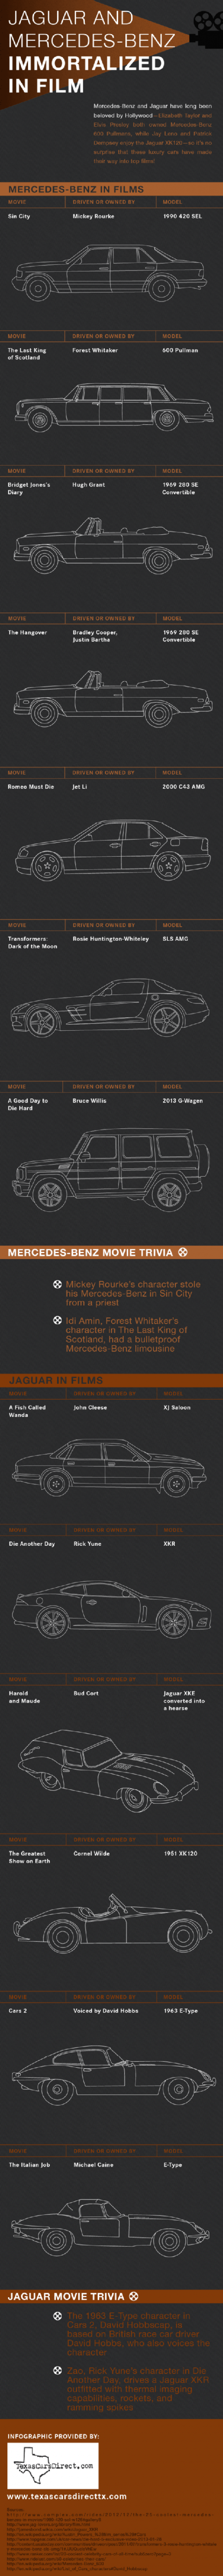 Jaguar and Mercedes-Benz Immortalized In Film